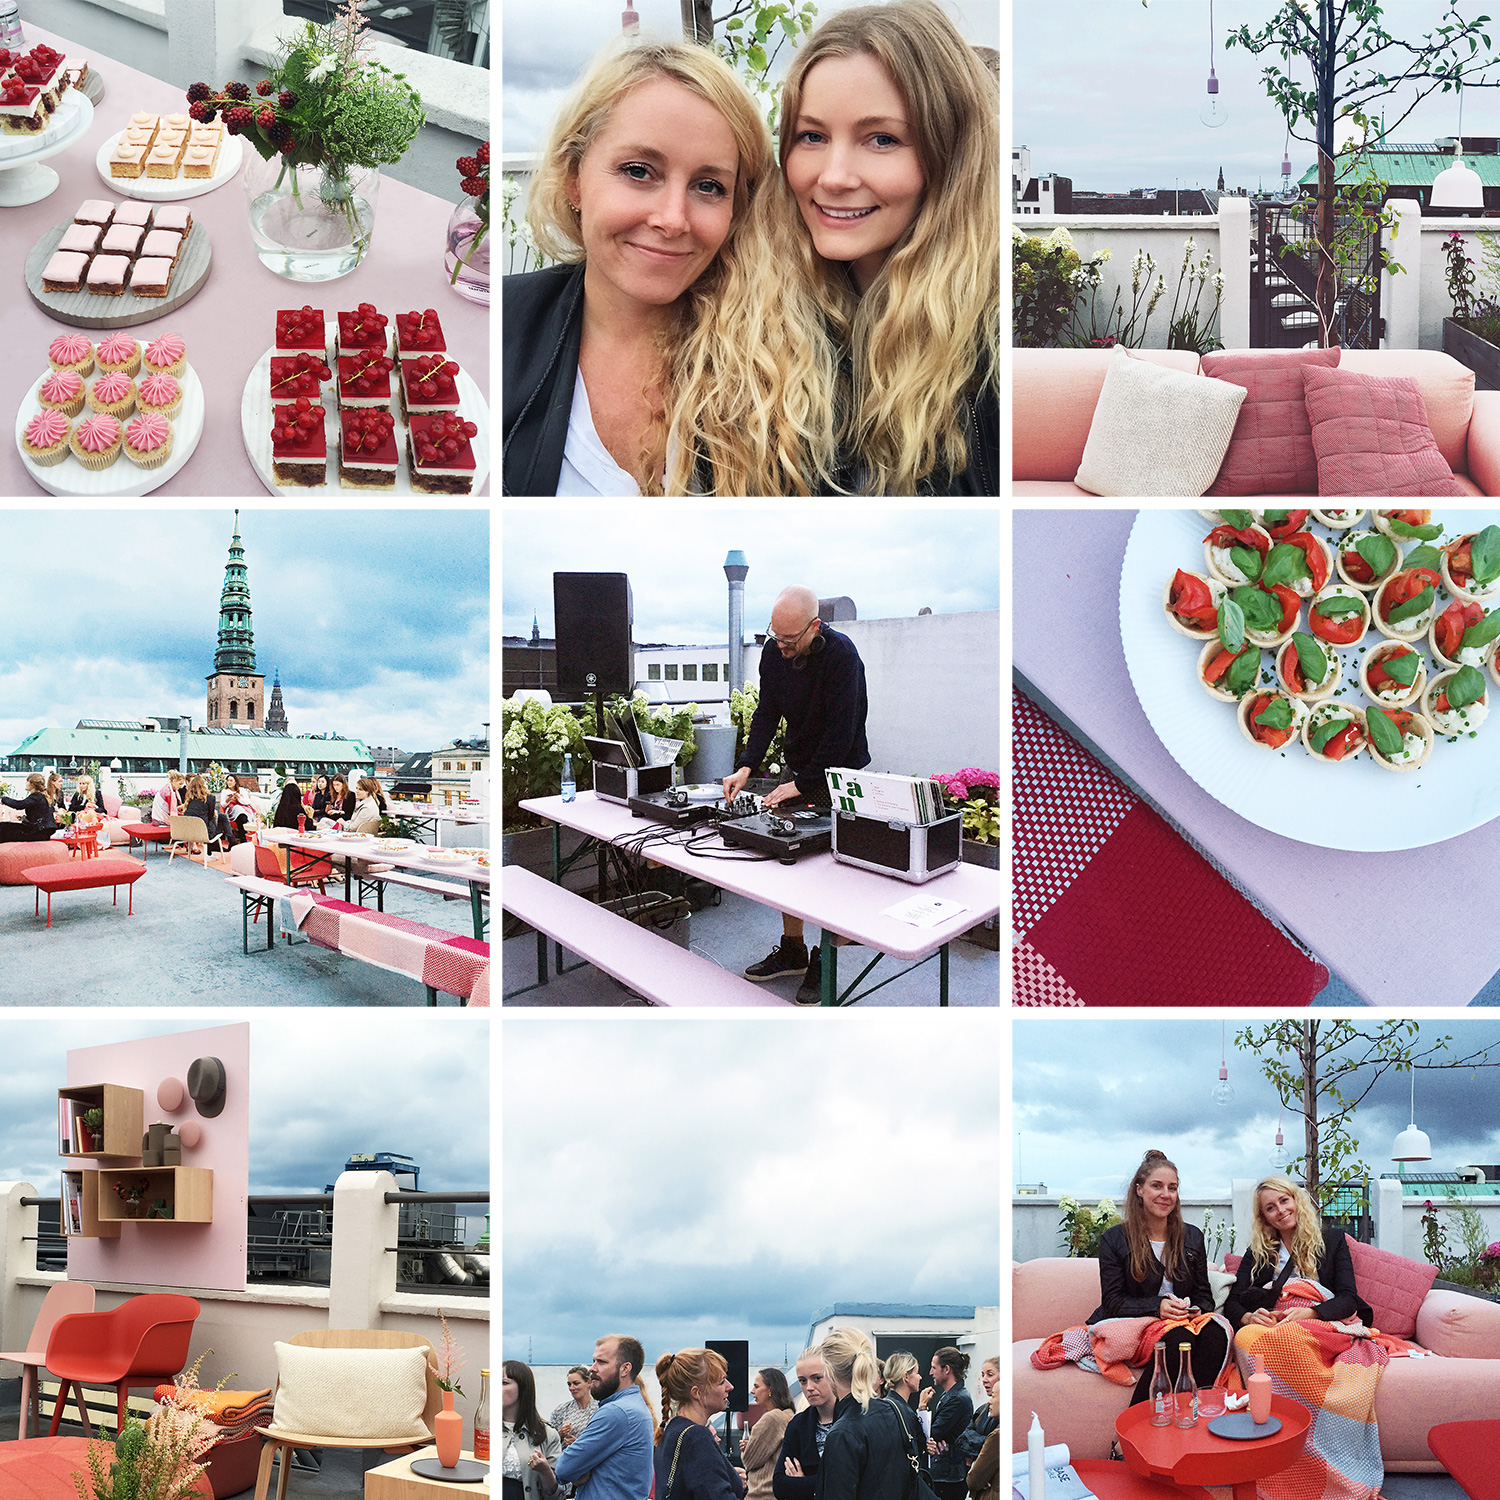 muuto-rooftop-party@2x